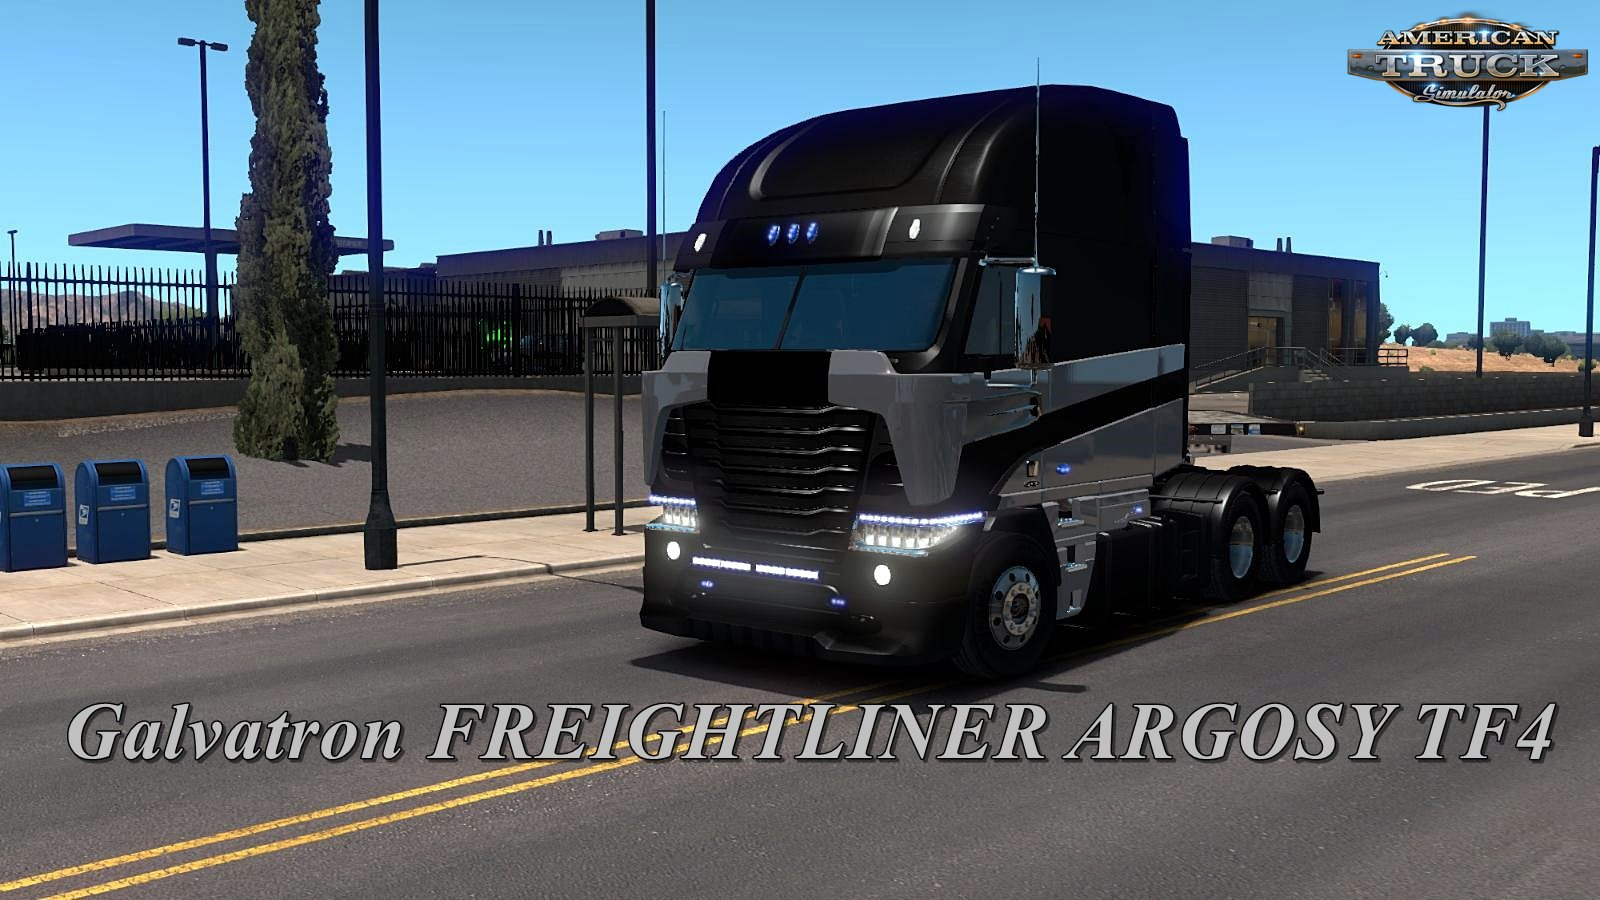 Galvatron TF4 (Freightliner Argosy) for Ats